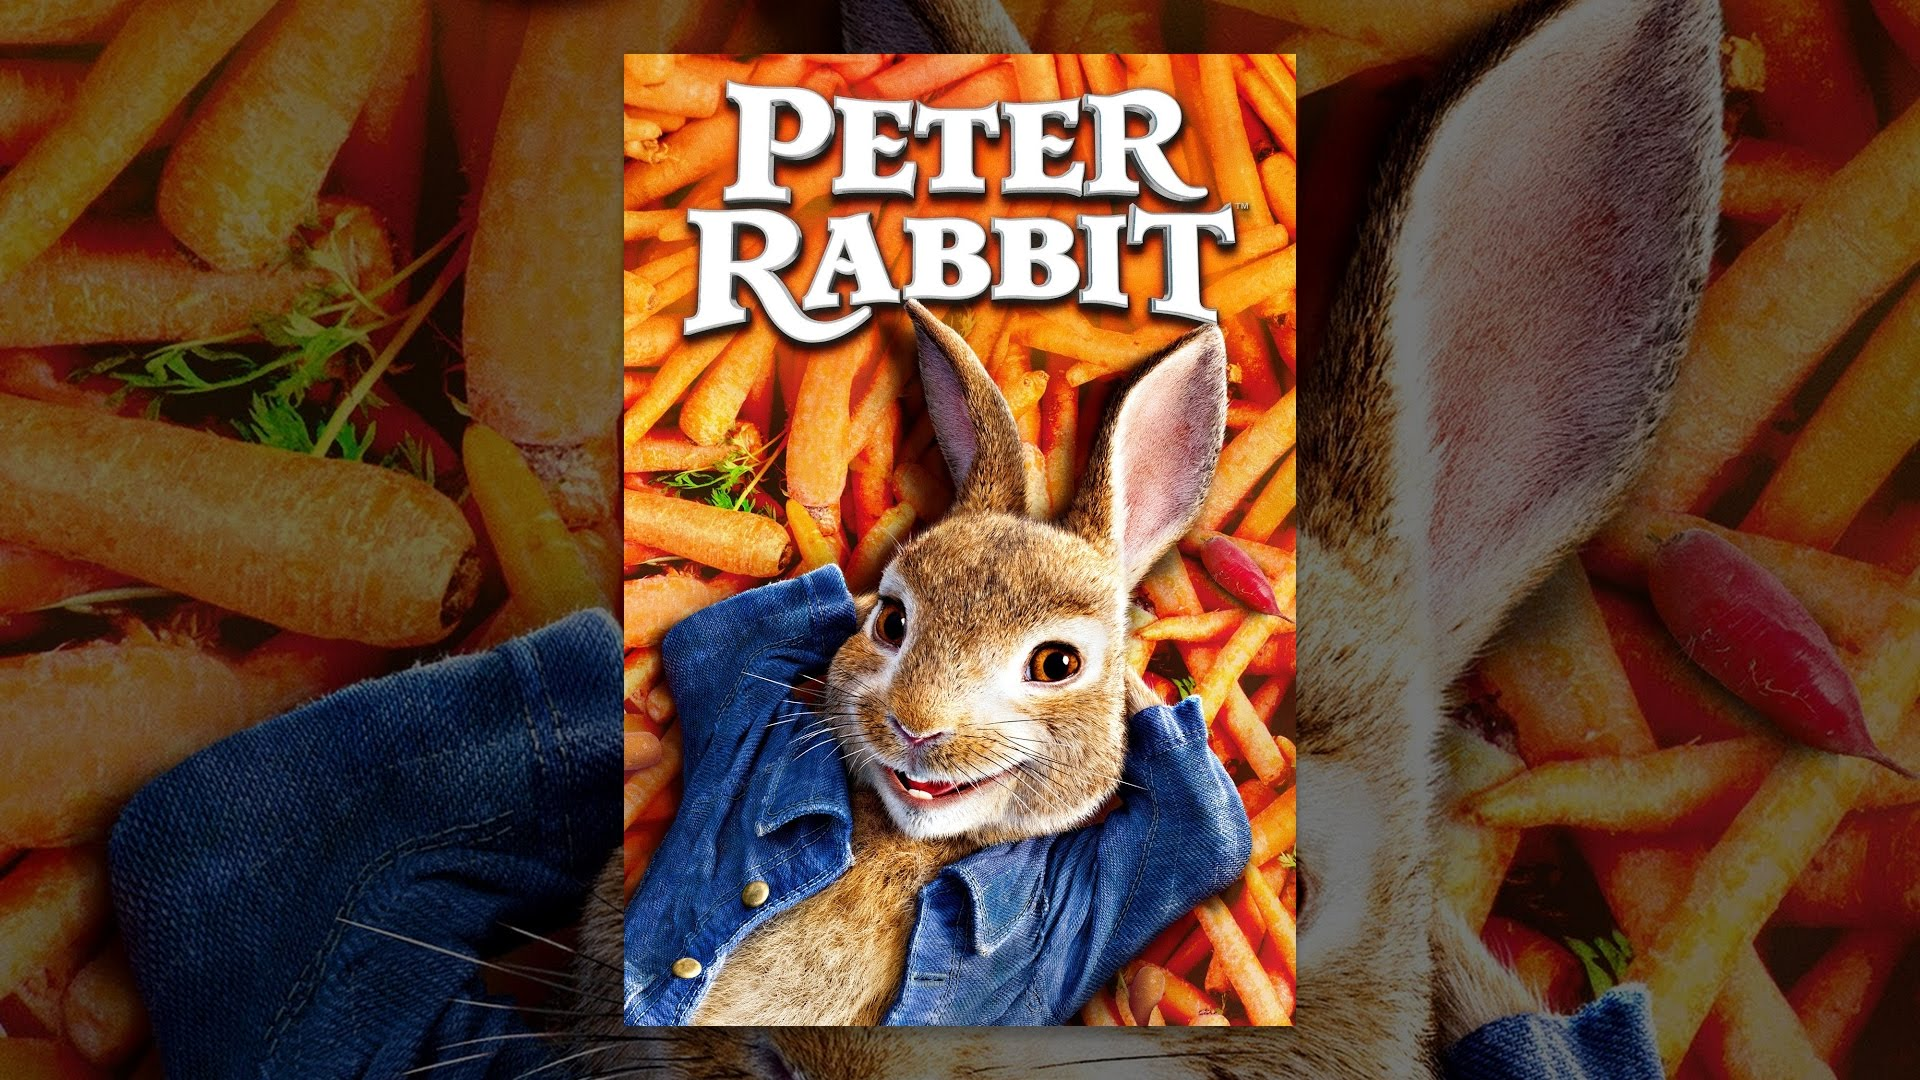 Peter Rabbit - YouTube